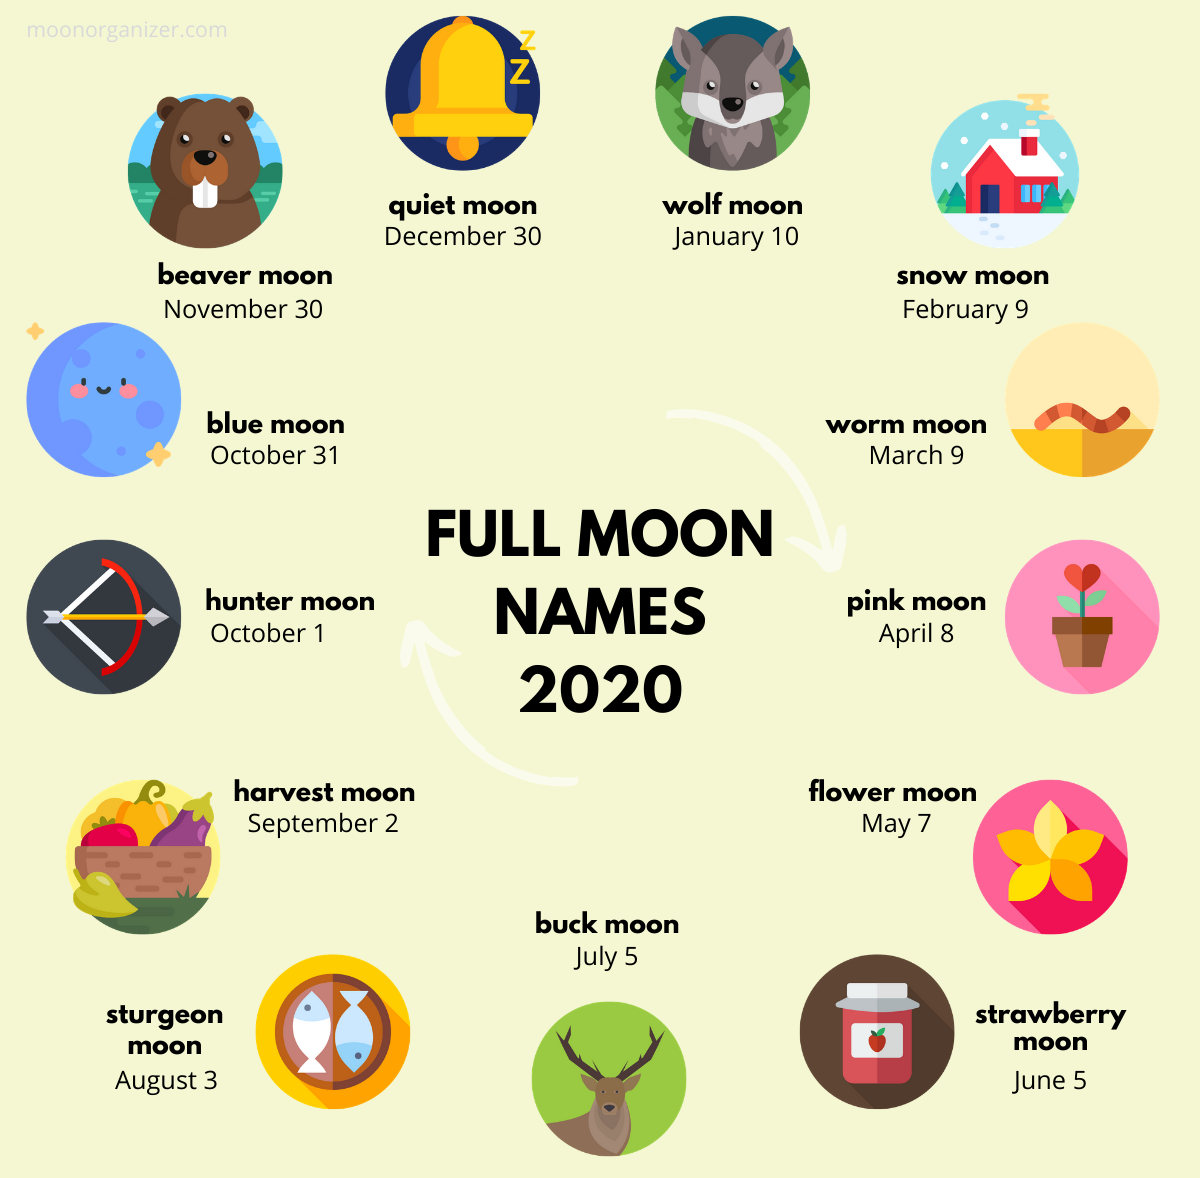 full moon names 2020